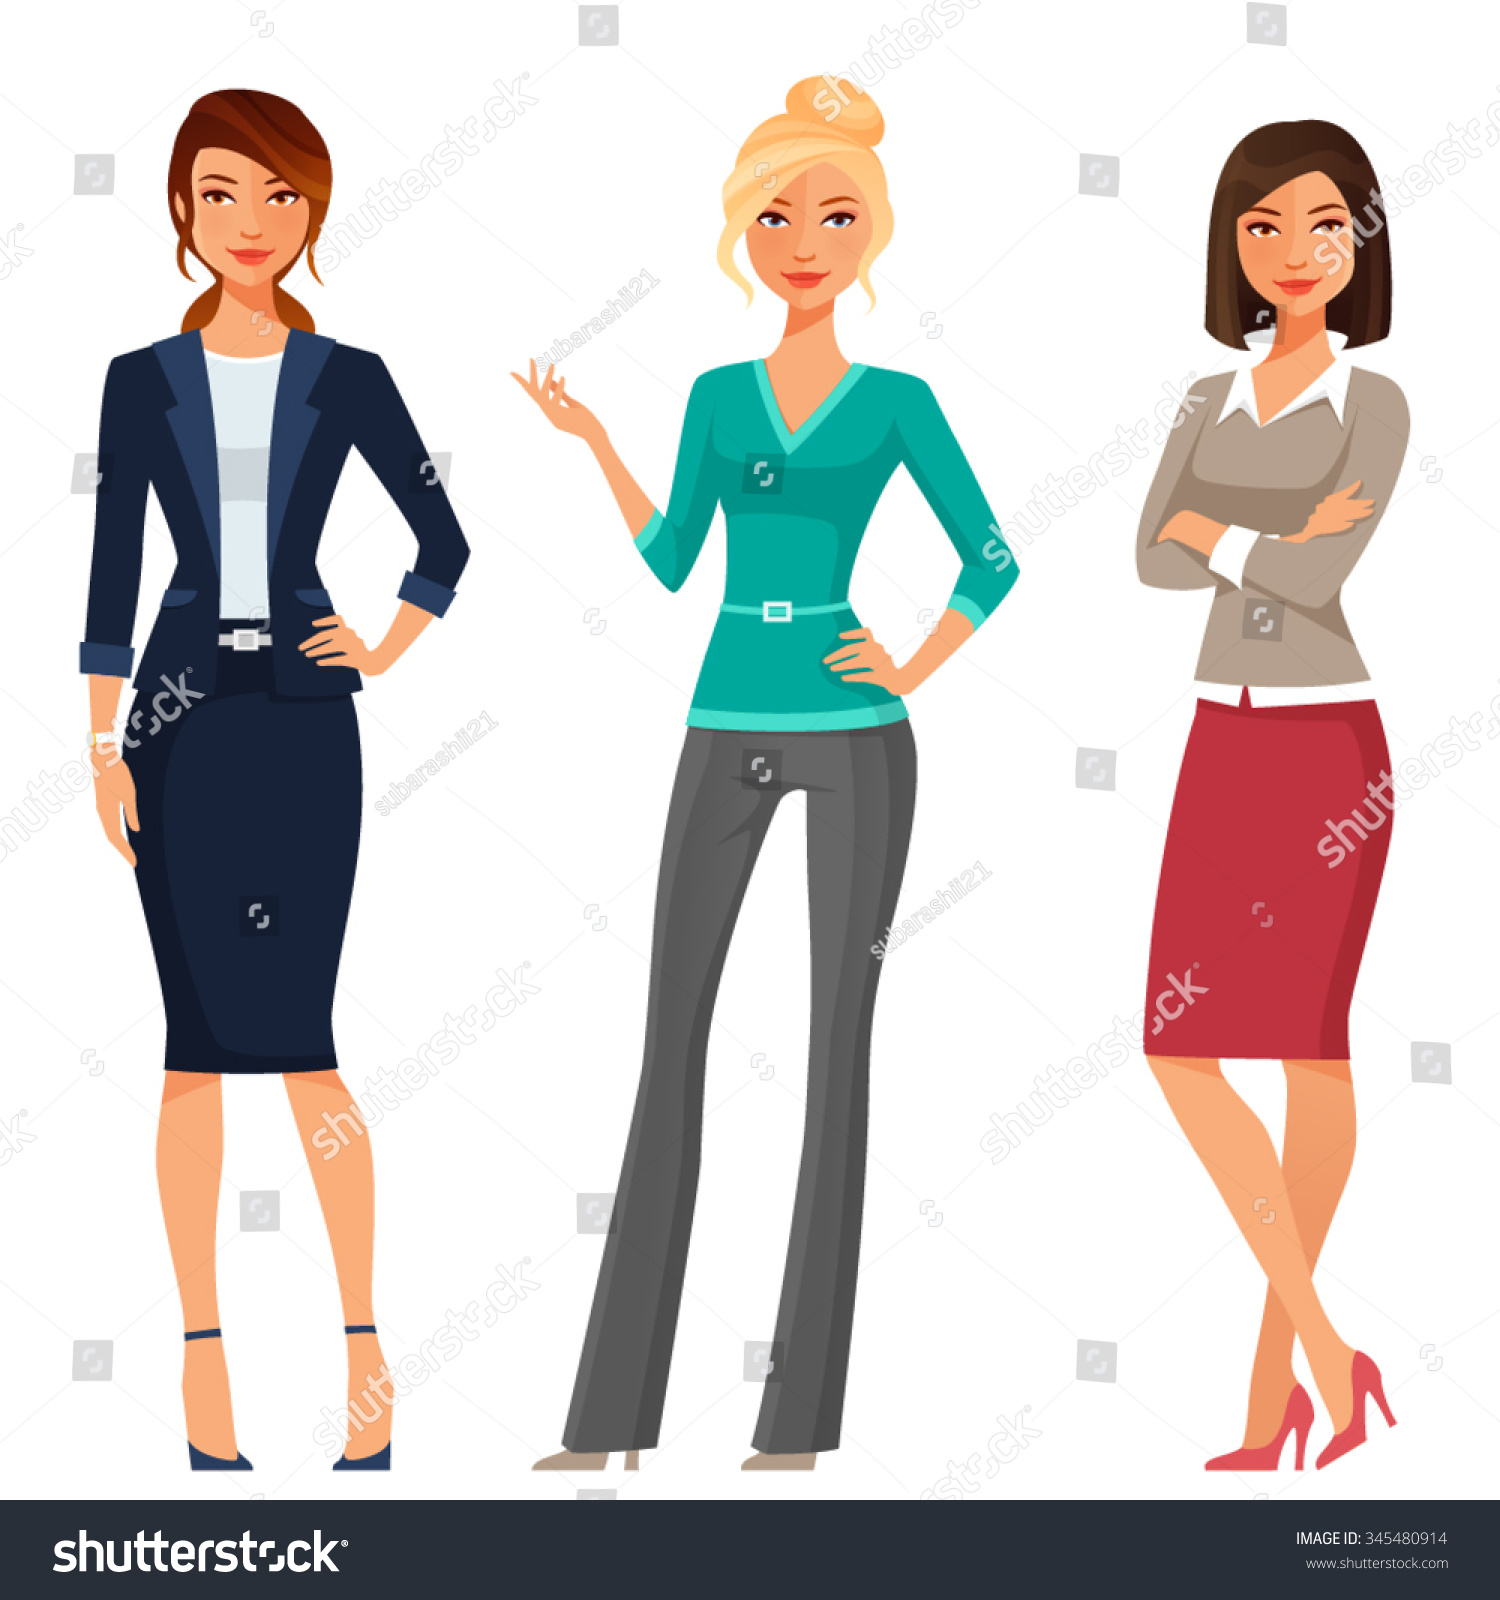 woman free in beautiful clothes office vector women royalty image